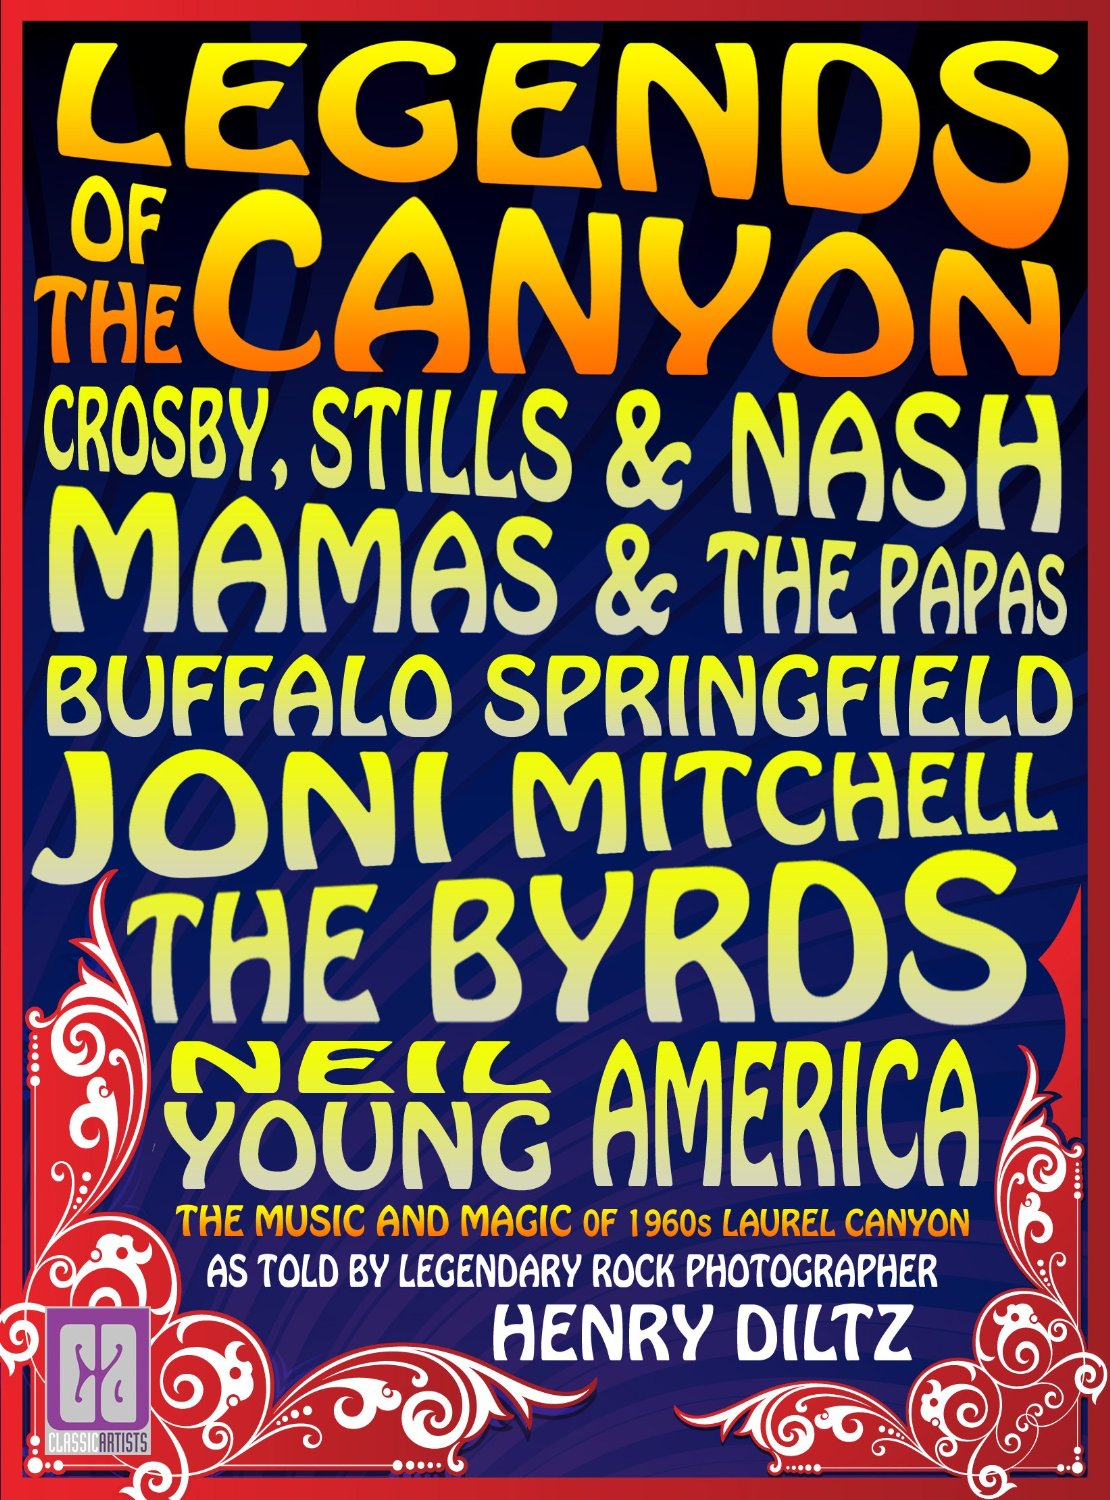 Legends-of-the Canyon-Classic-Artists